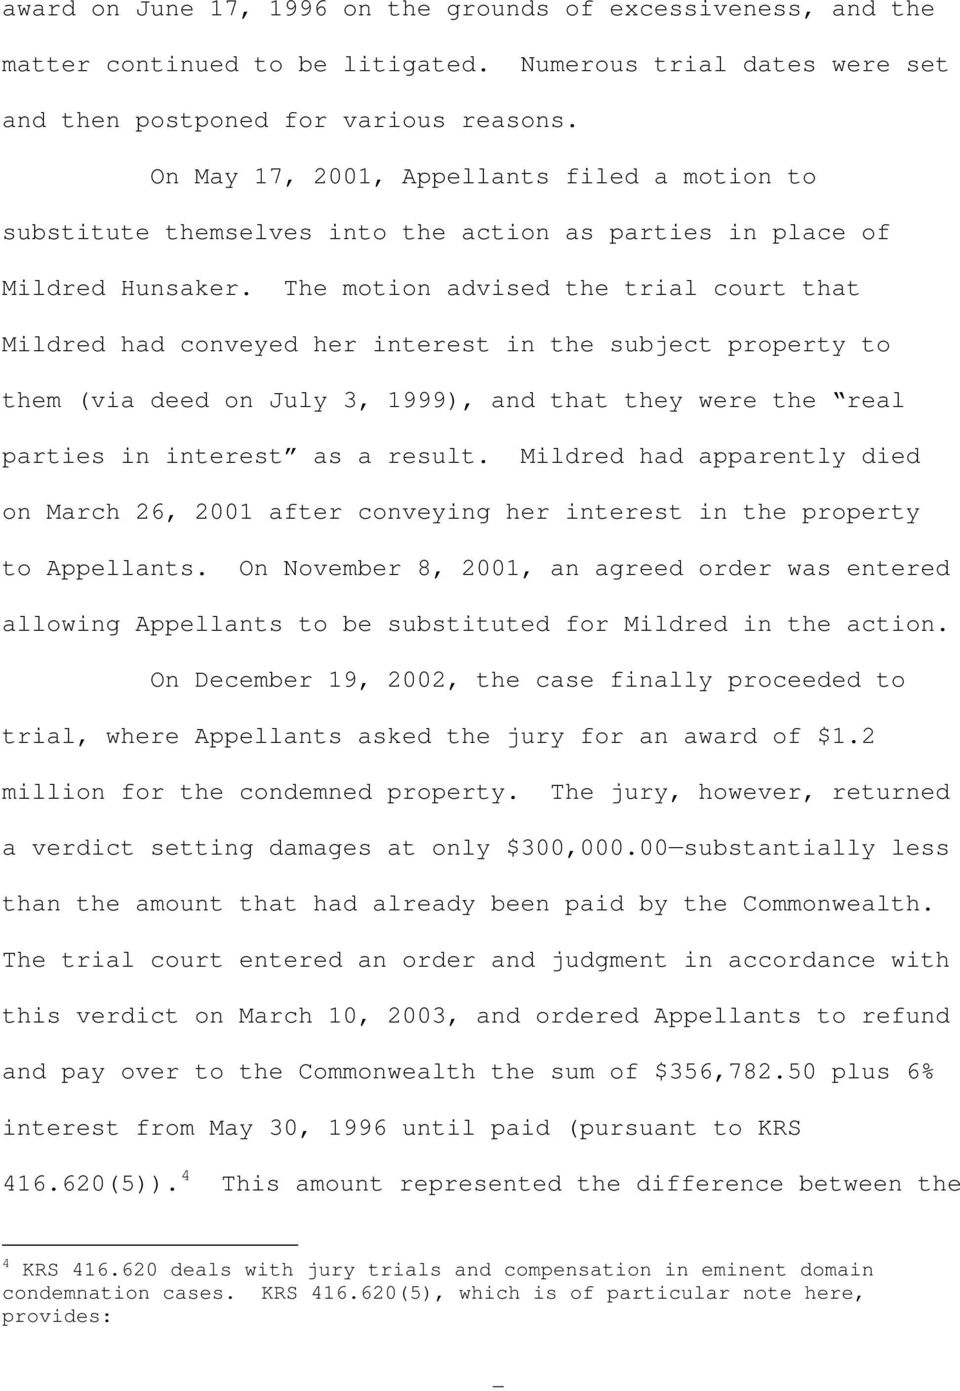 The motion advised the trial court that Mildred had conveyed her interest in the subject property to them (via deed on July 3, 1999), and that they were the real parties in interest as a result.